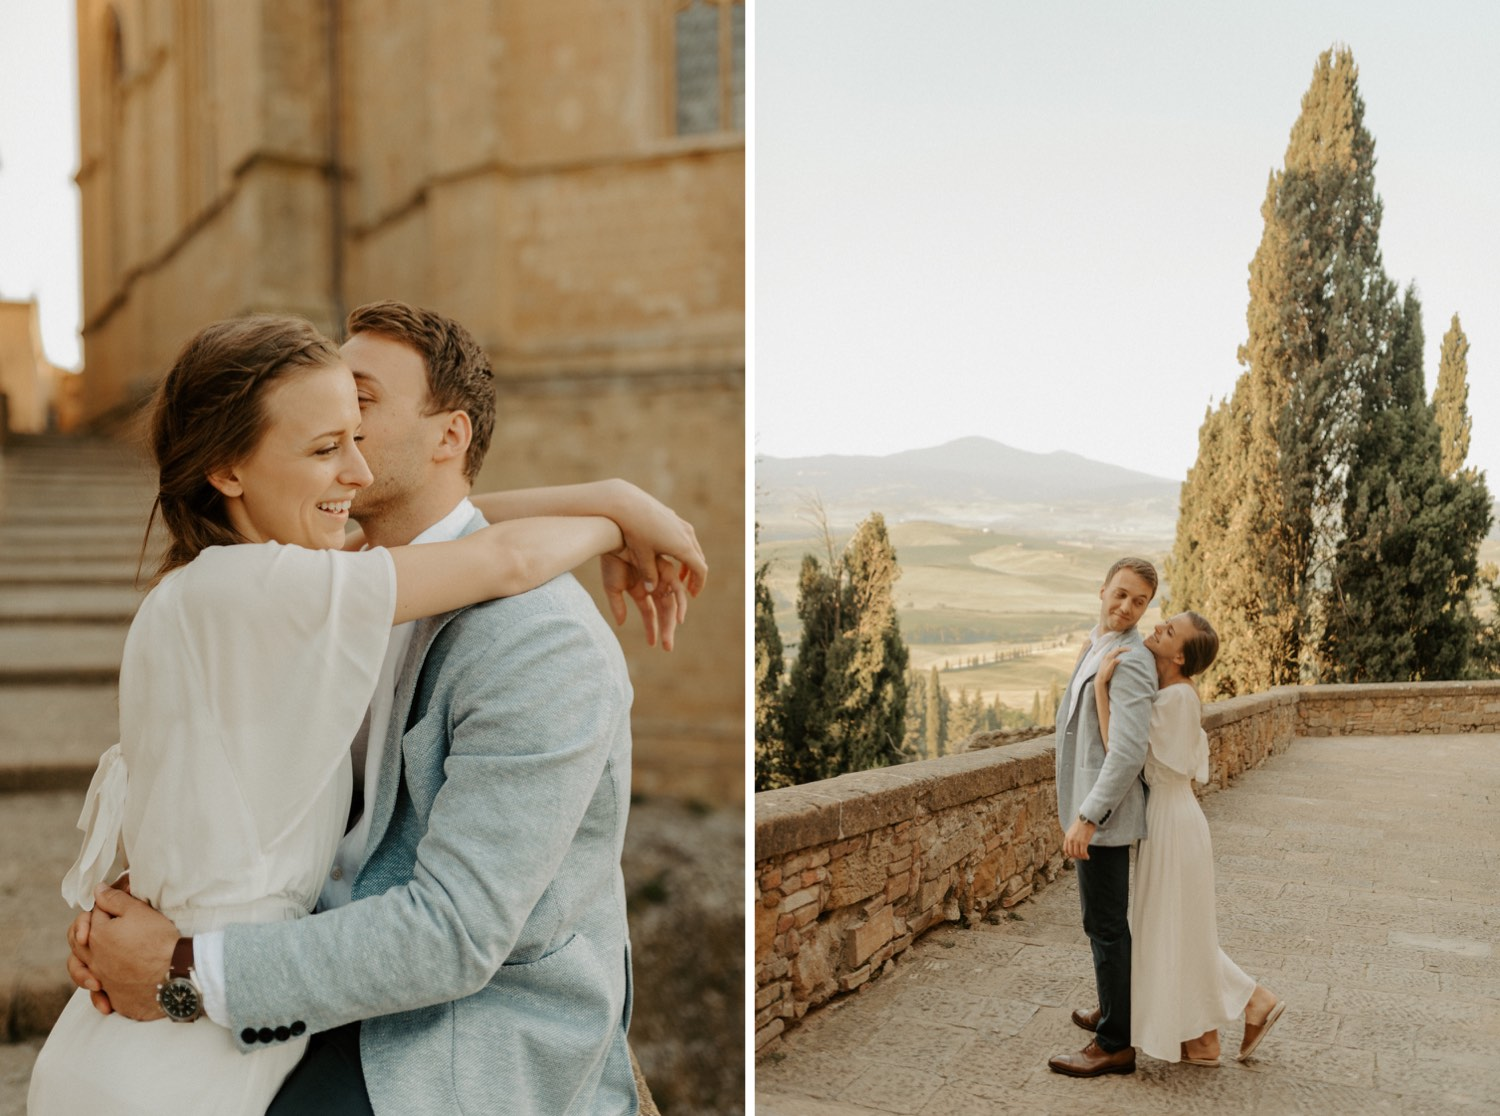 40_ali-dirk-pre-wedding-168_ali-dirk-pre-wedding-154_tuscany_pienza_wedding_italy_photography.jpg